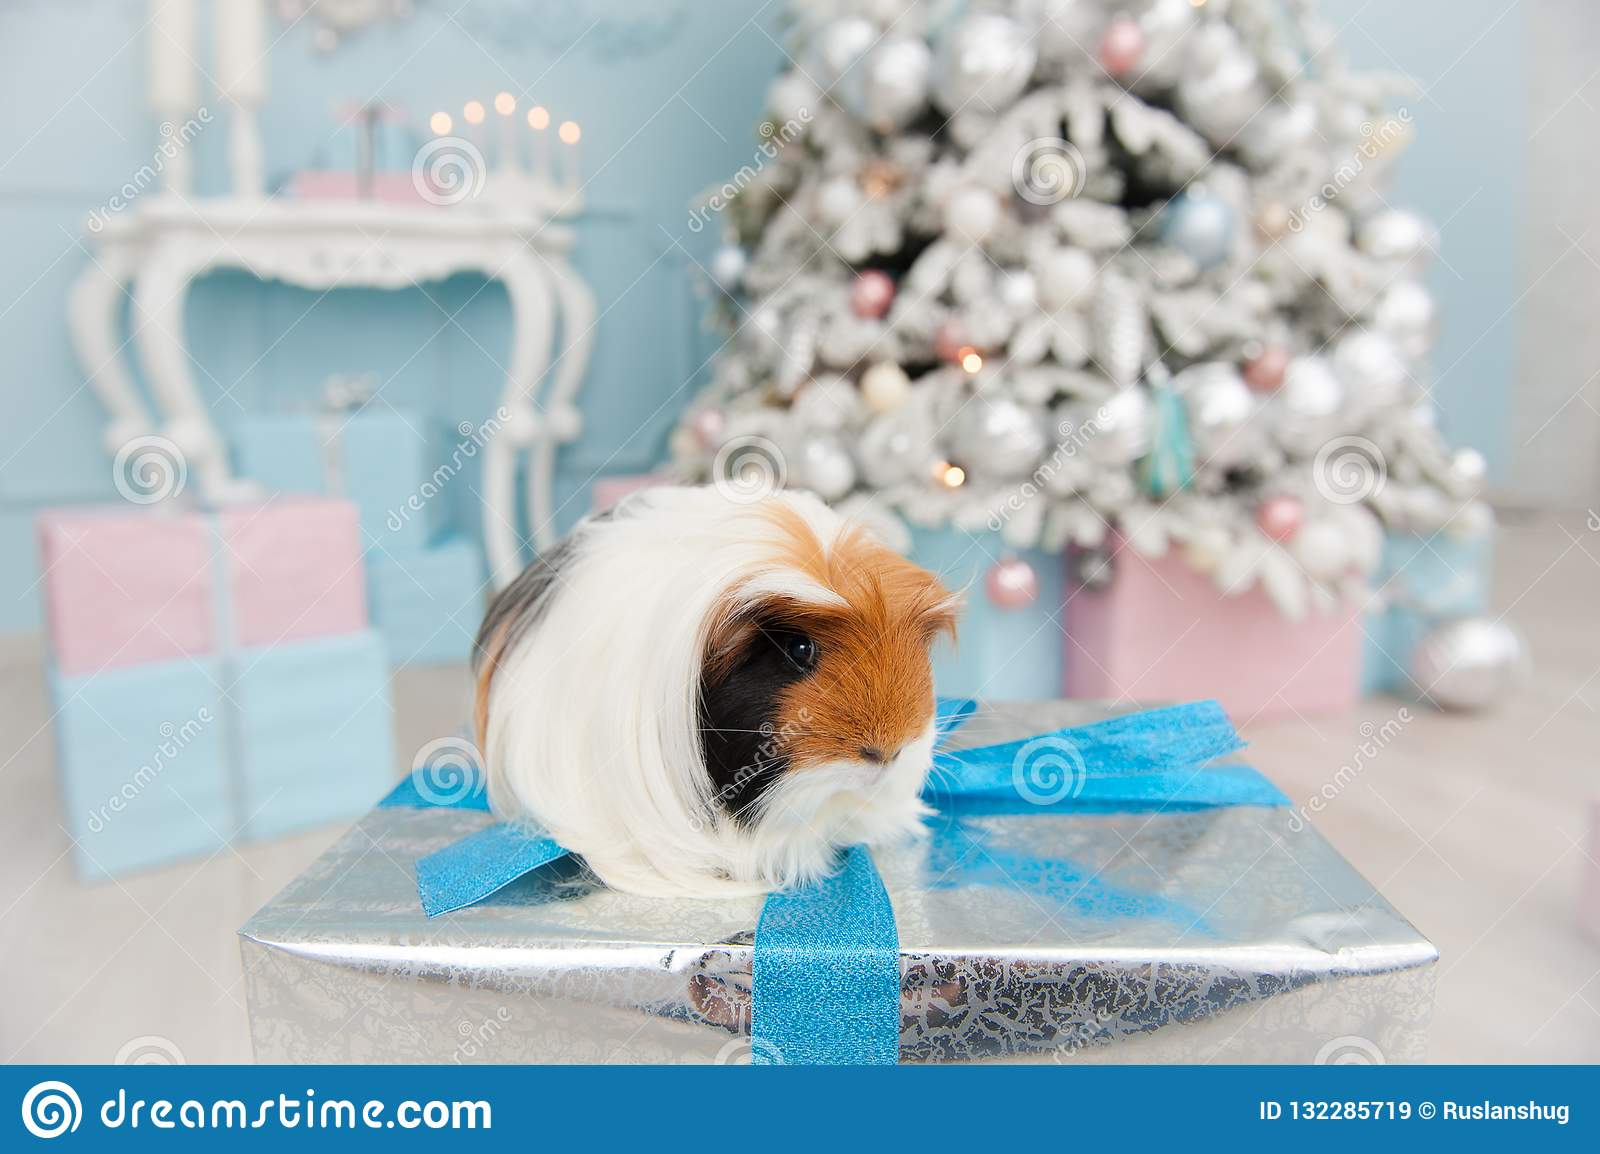 Guinea Pig Pet Sitting On Christmas Gift Box In Bright Room With Happy New  Year Decor